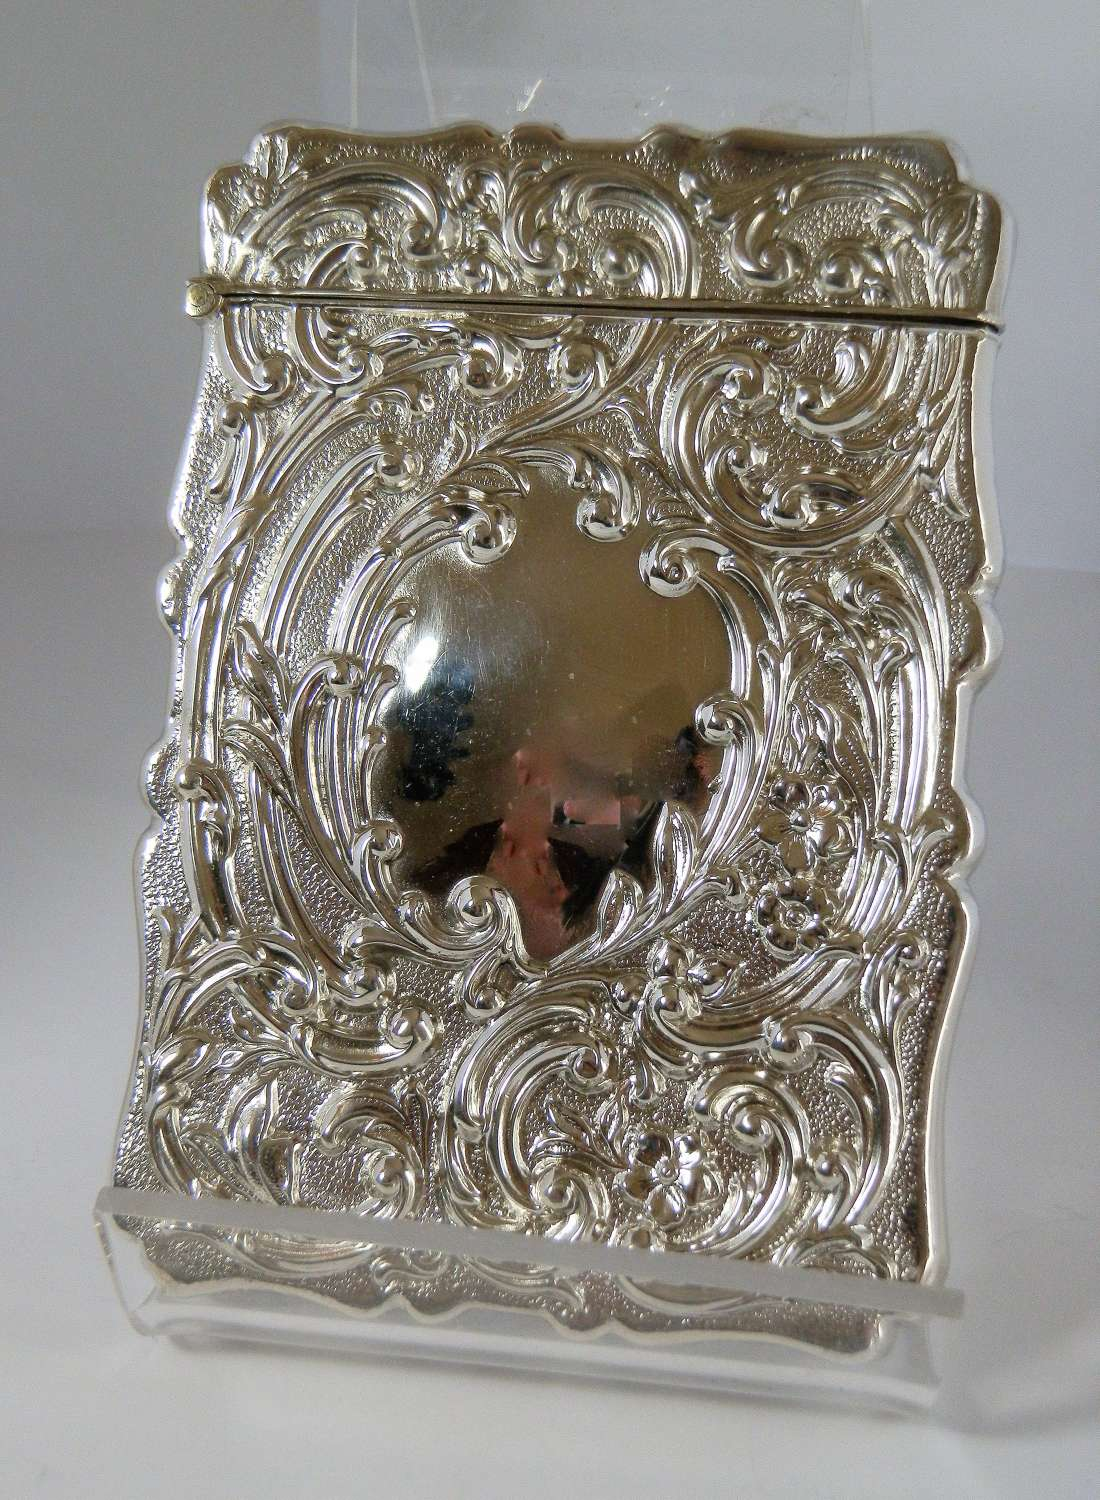 Edwardian silver card case by Spurrier & Co, Birmingham 1908